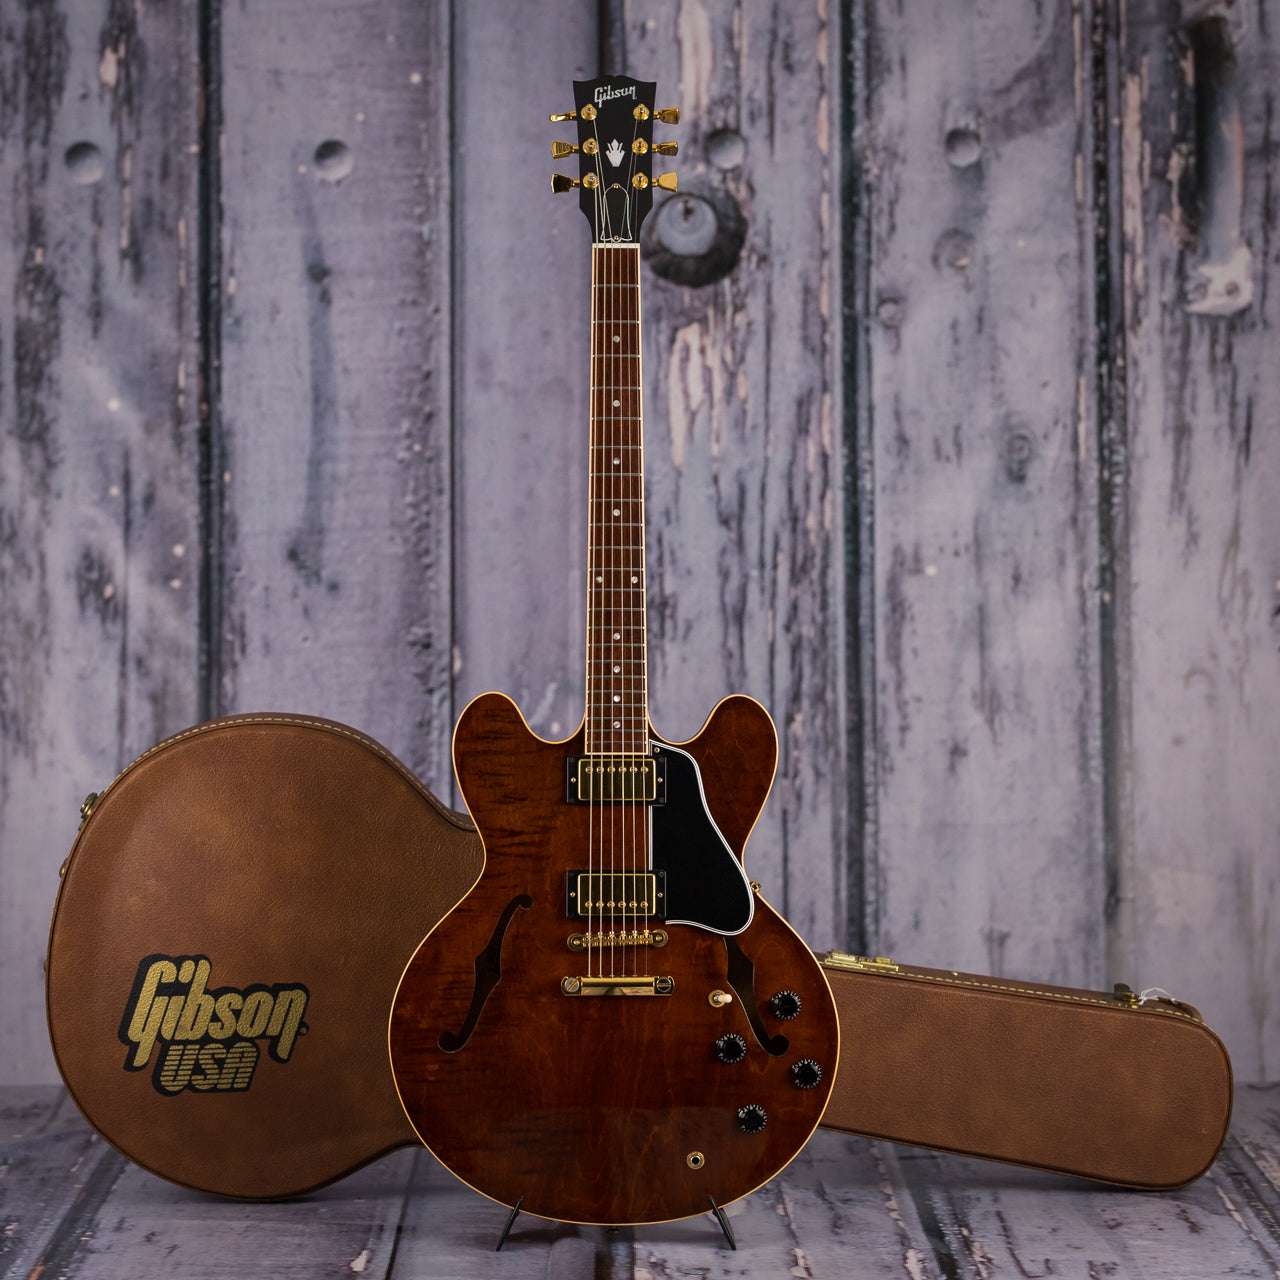 Used Gibson Es 335 For Sale : used gibson es 335 dot 2000 transparent brown for sale replay guitar ~ Vivirlamusica.com Haus und Dekorationen